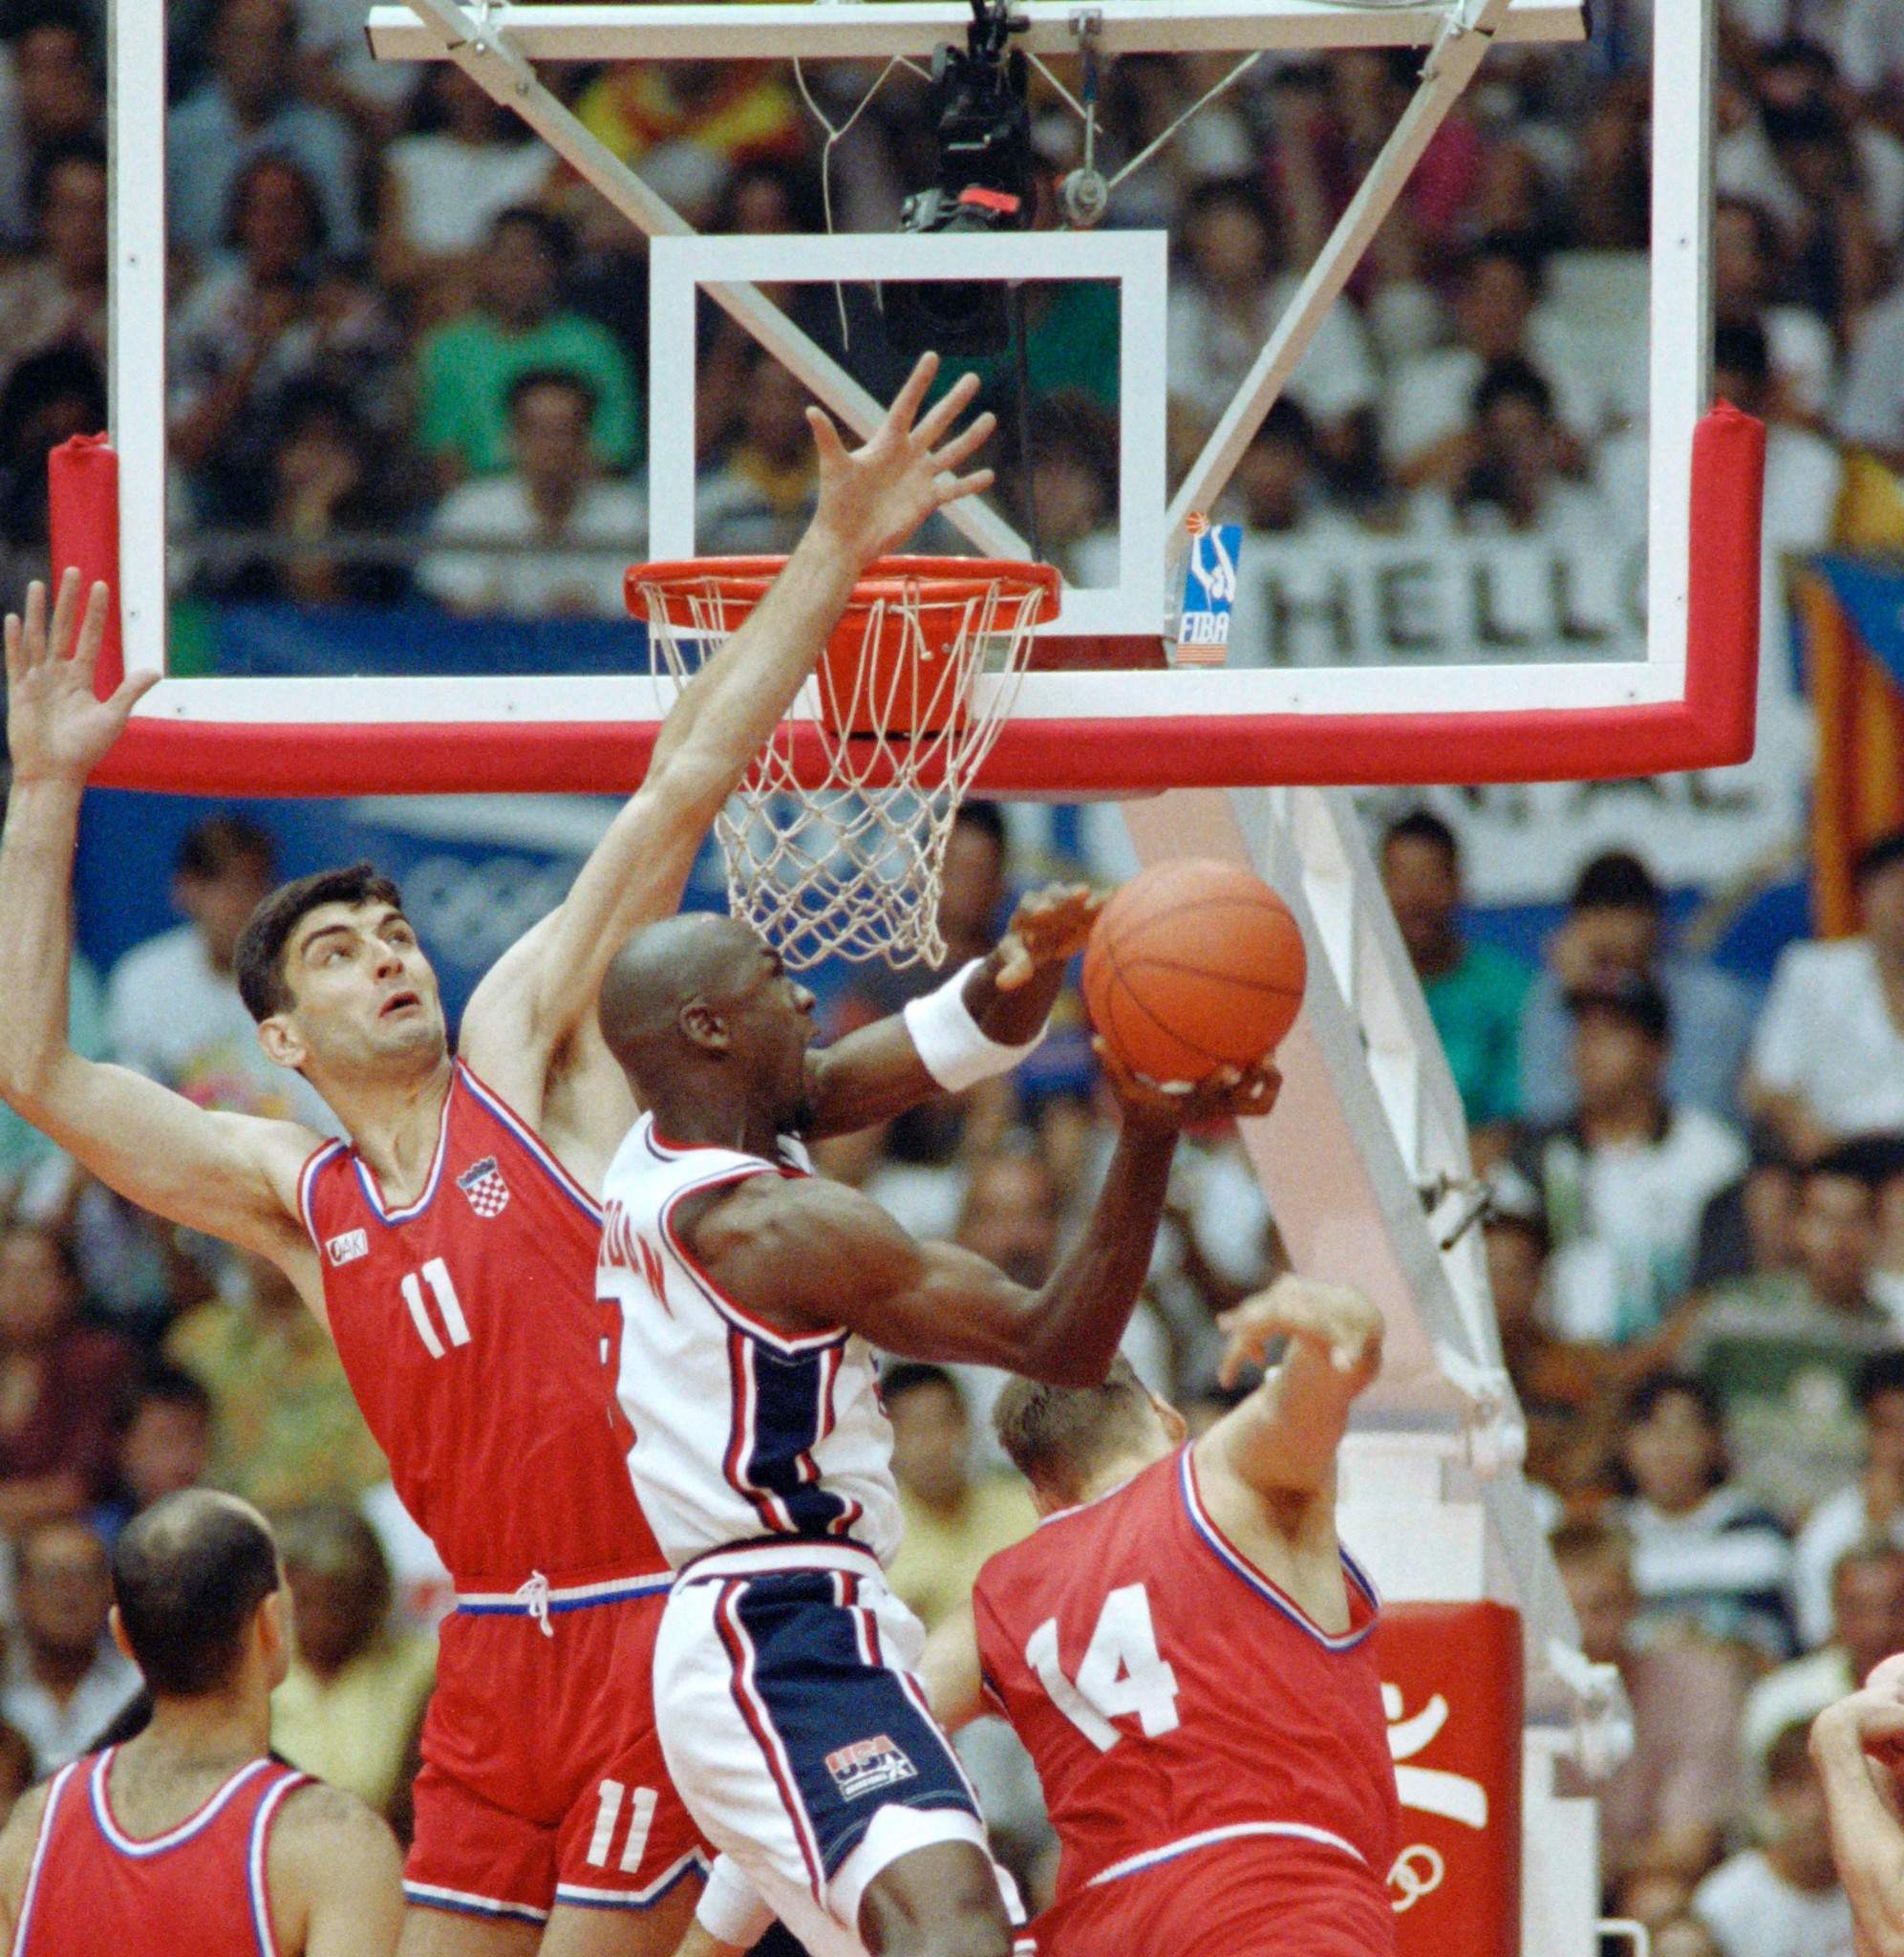 Backboard, net and rim from historic 1992 Olympic basketball tournament up for auction